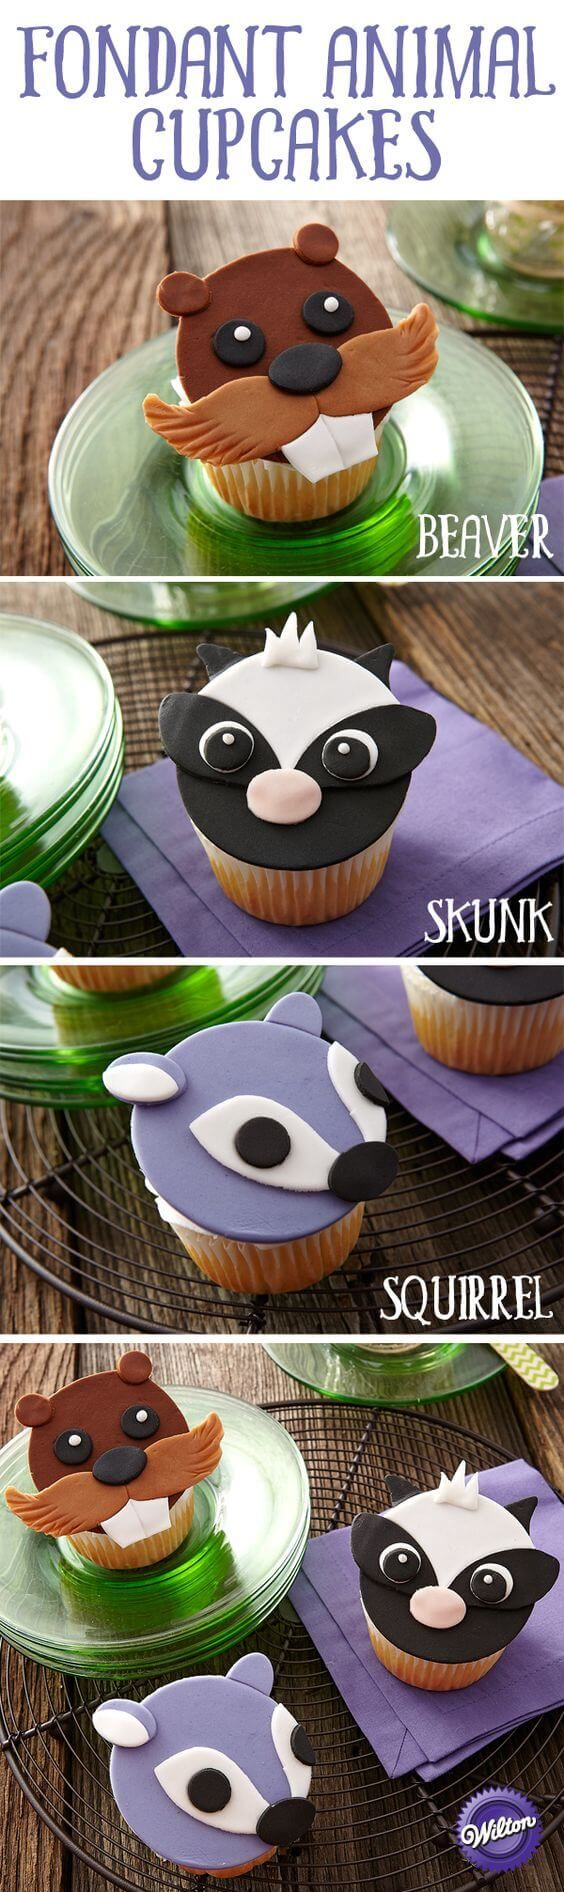 cool Forest Friends Fondant Cupcakes